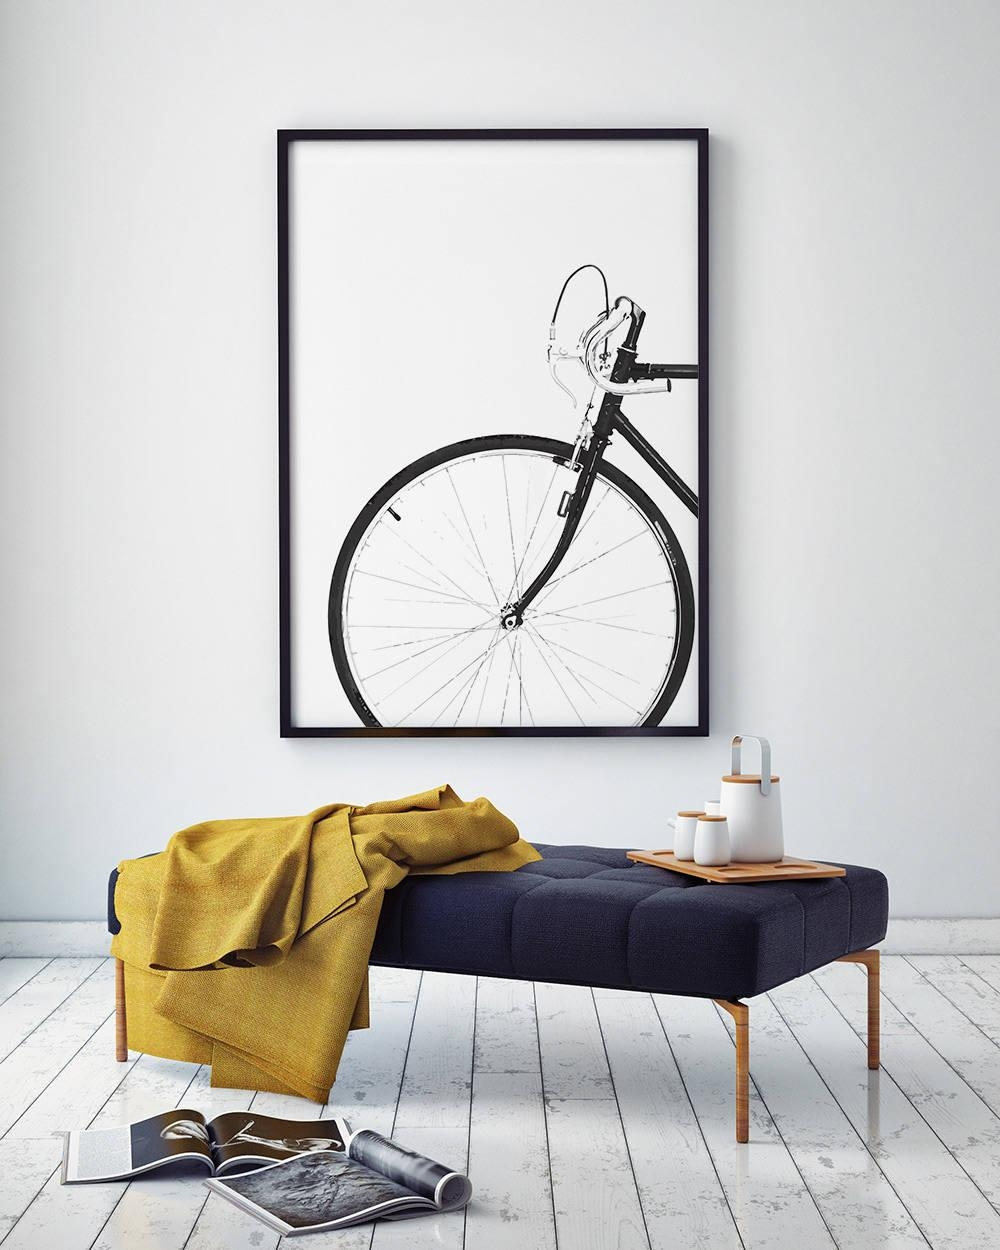 Cycling Poster, Bicycle Poster, Bike Print, Bicycle Wall Art Pertaining To Cycling Wall Art (Image 7 of 20)